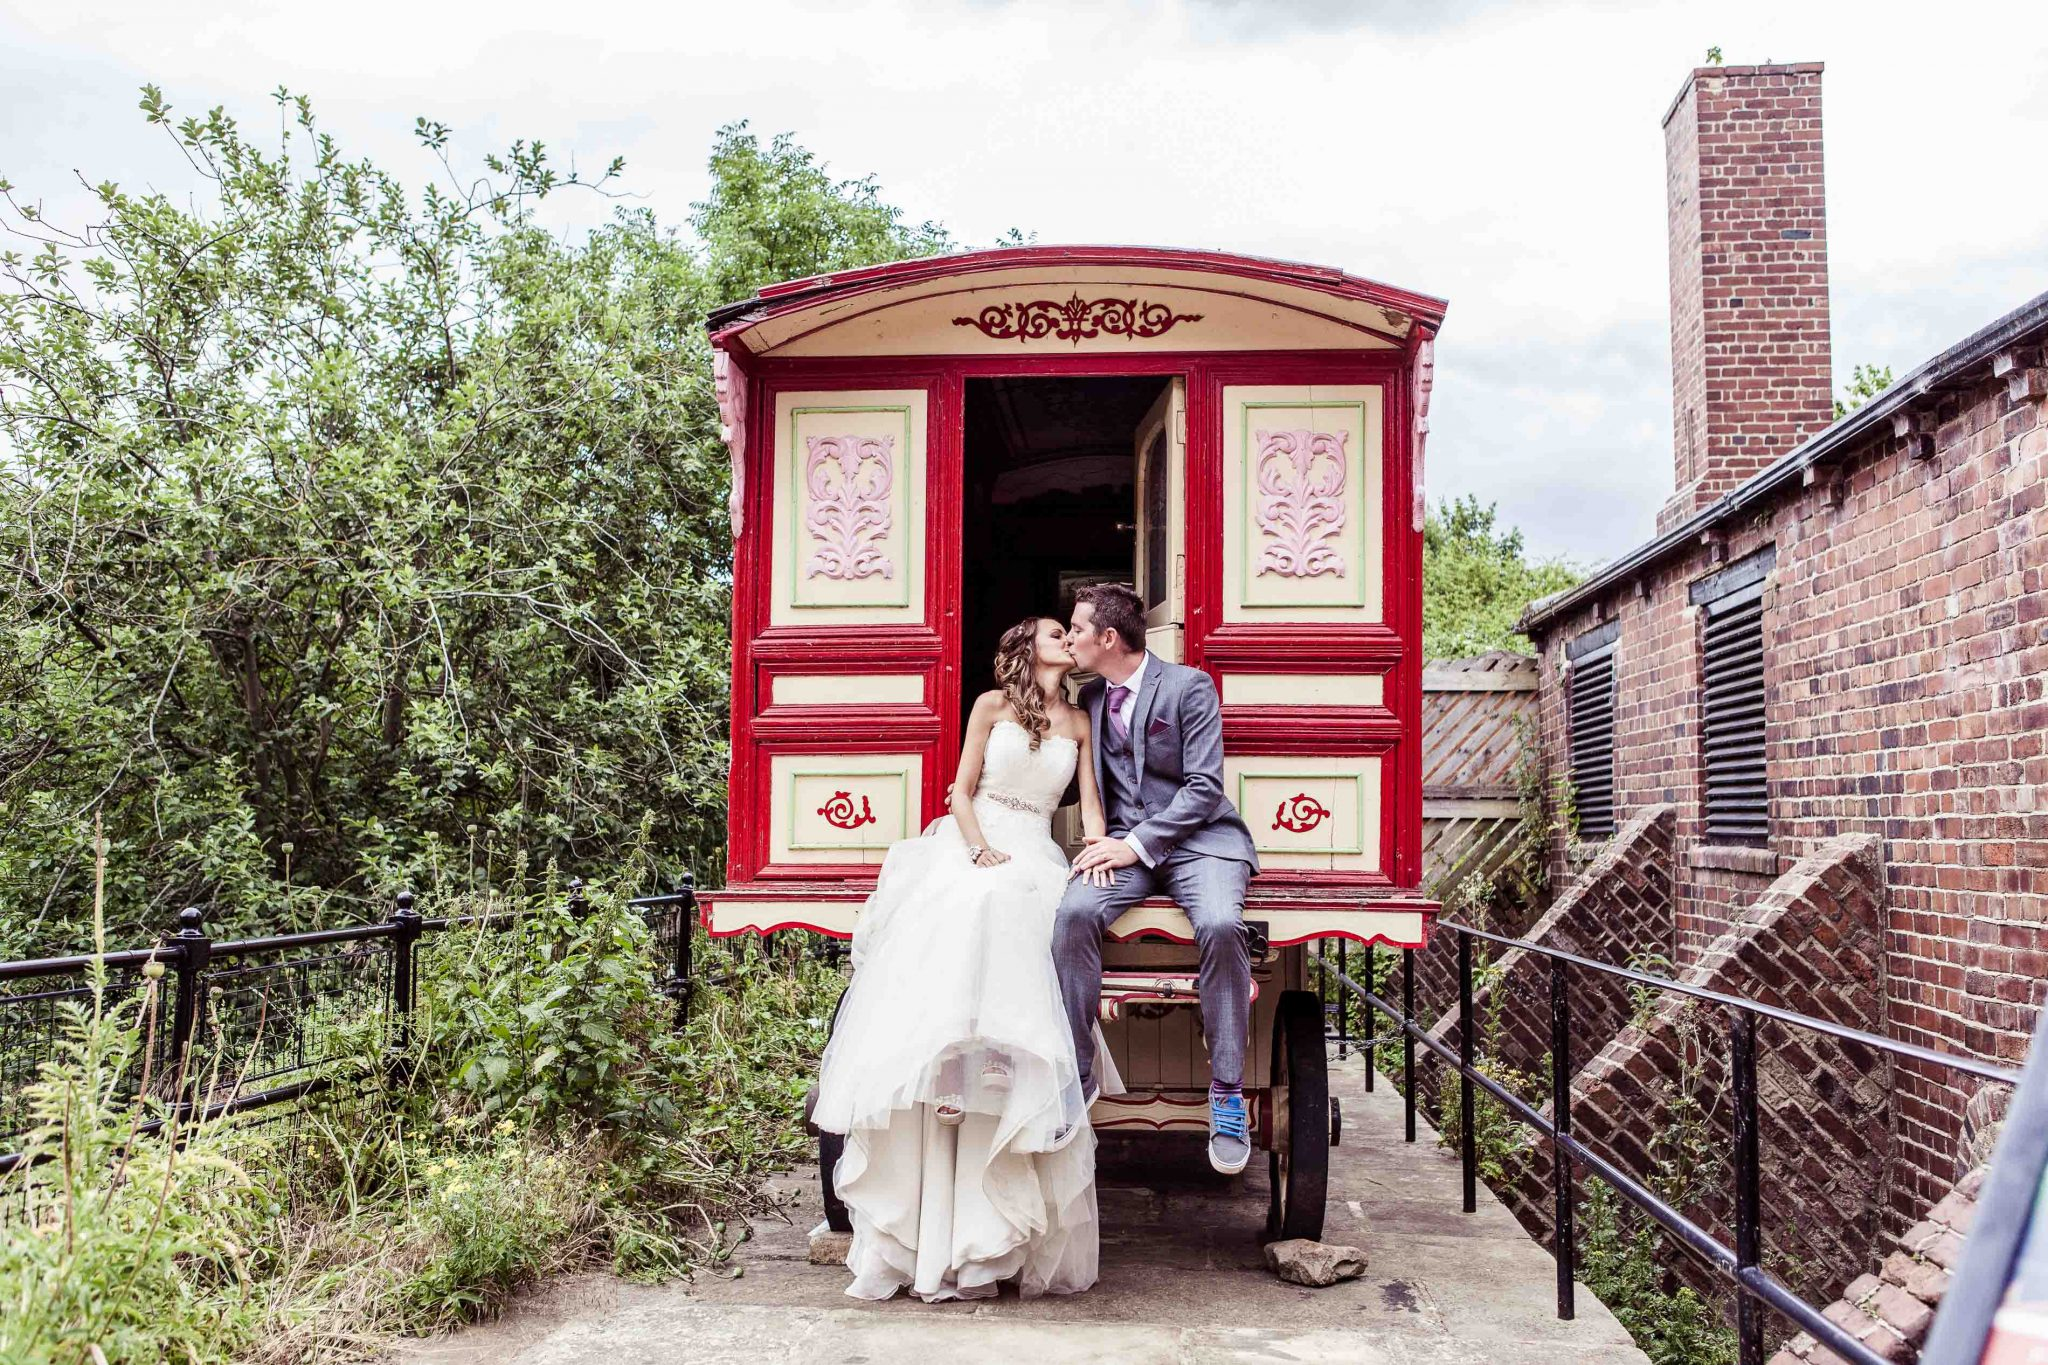 Gypsy caravan Thwaite Mills Stourton, leeds wedding photographer Sadie Ferriday photographed the beautiful alternative wedding